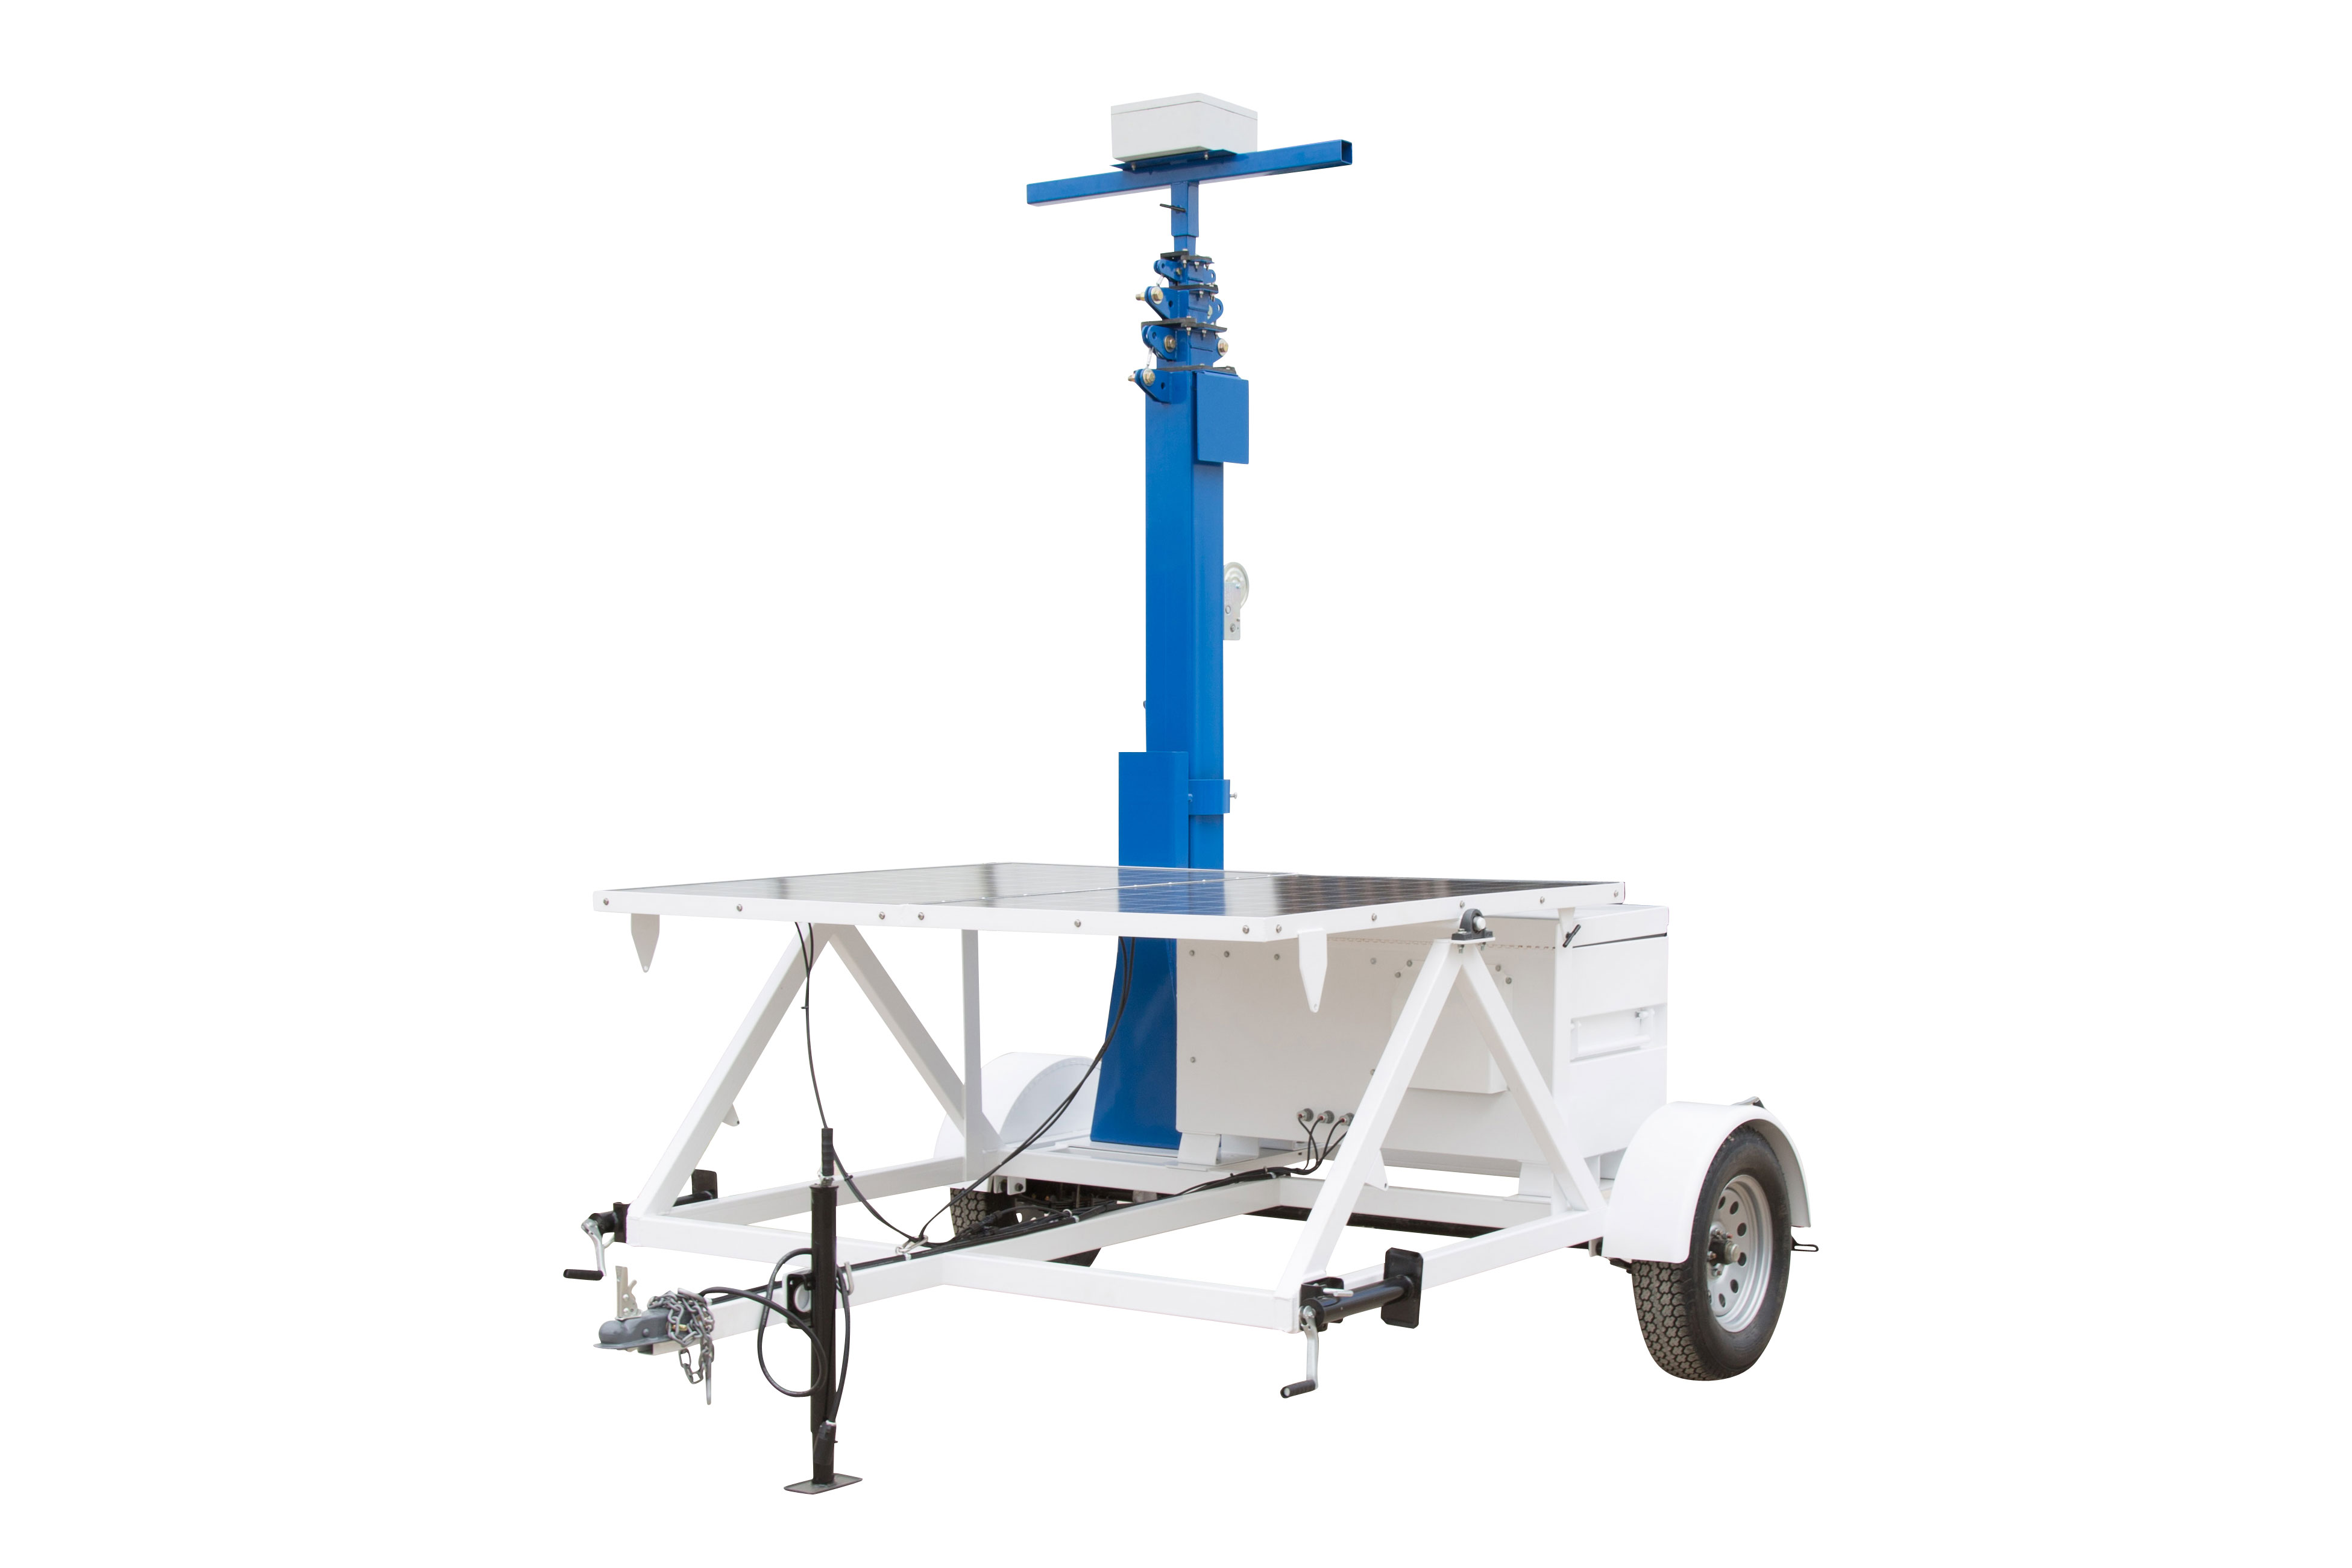 Larson Electronics Releases Portable Solar Powered Tower on Seven